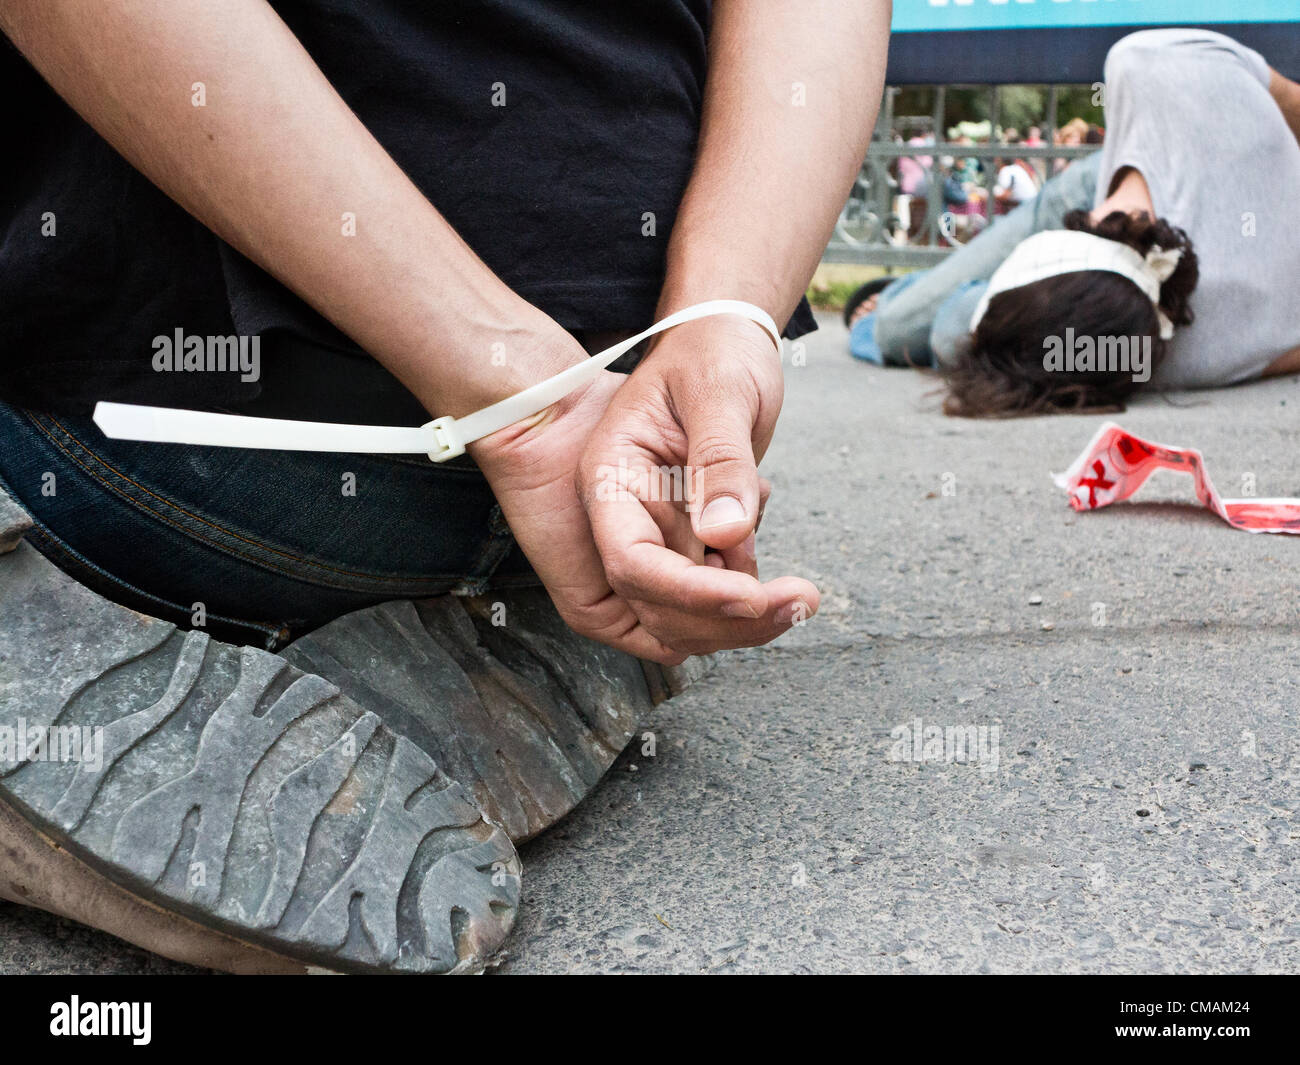 Jerusalem, Israel. 5-July-2012. The hands of a human rights activist-actor are tied behind his back protesting alleged - Stock Image